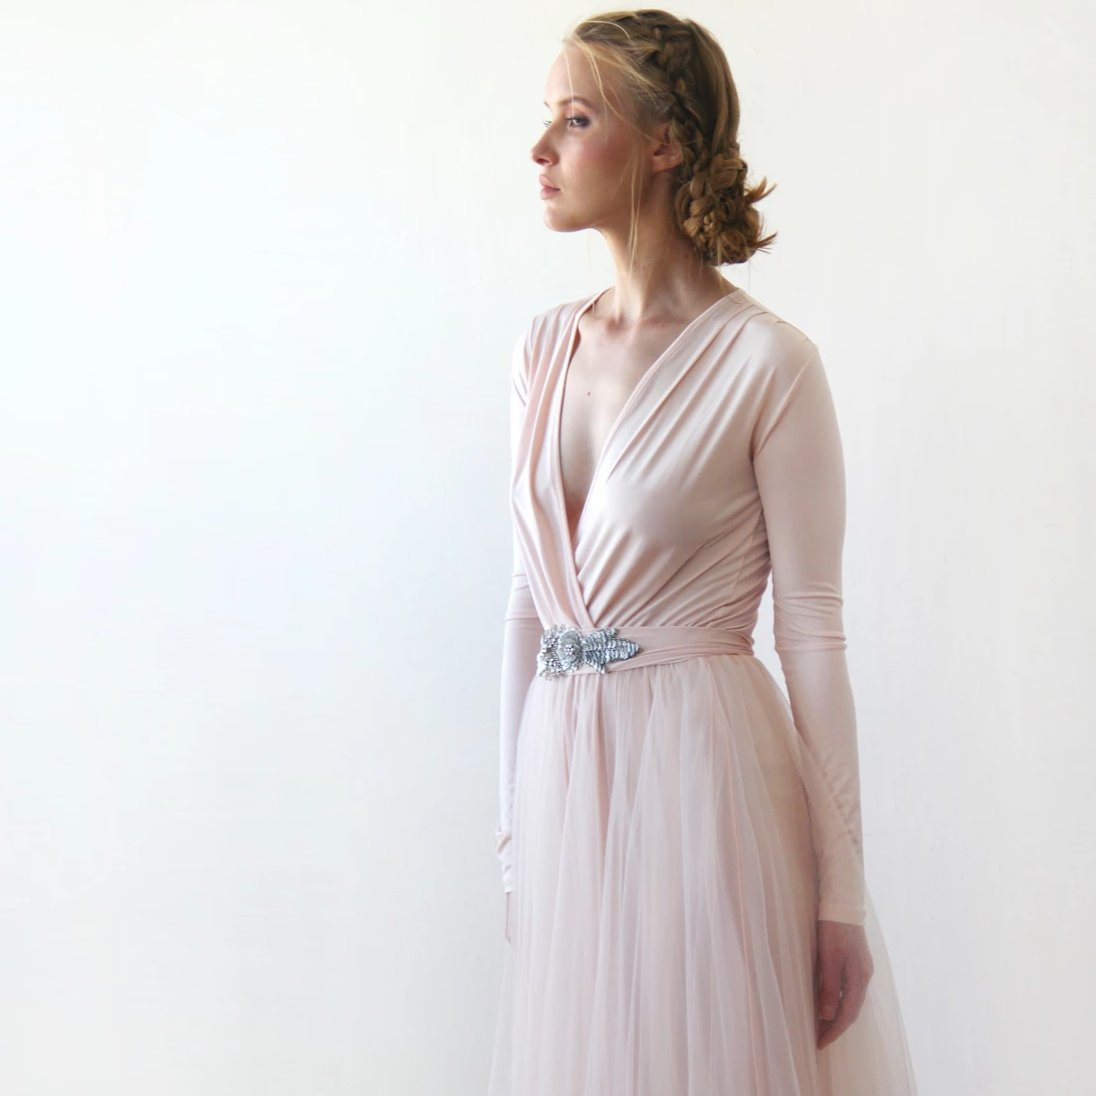 baby Pink Formal Maxi Dress, Wrap Dress With Tulle, Bridesmaids Dress With embellished sash 1204 - Blushfashion